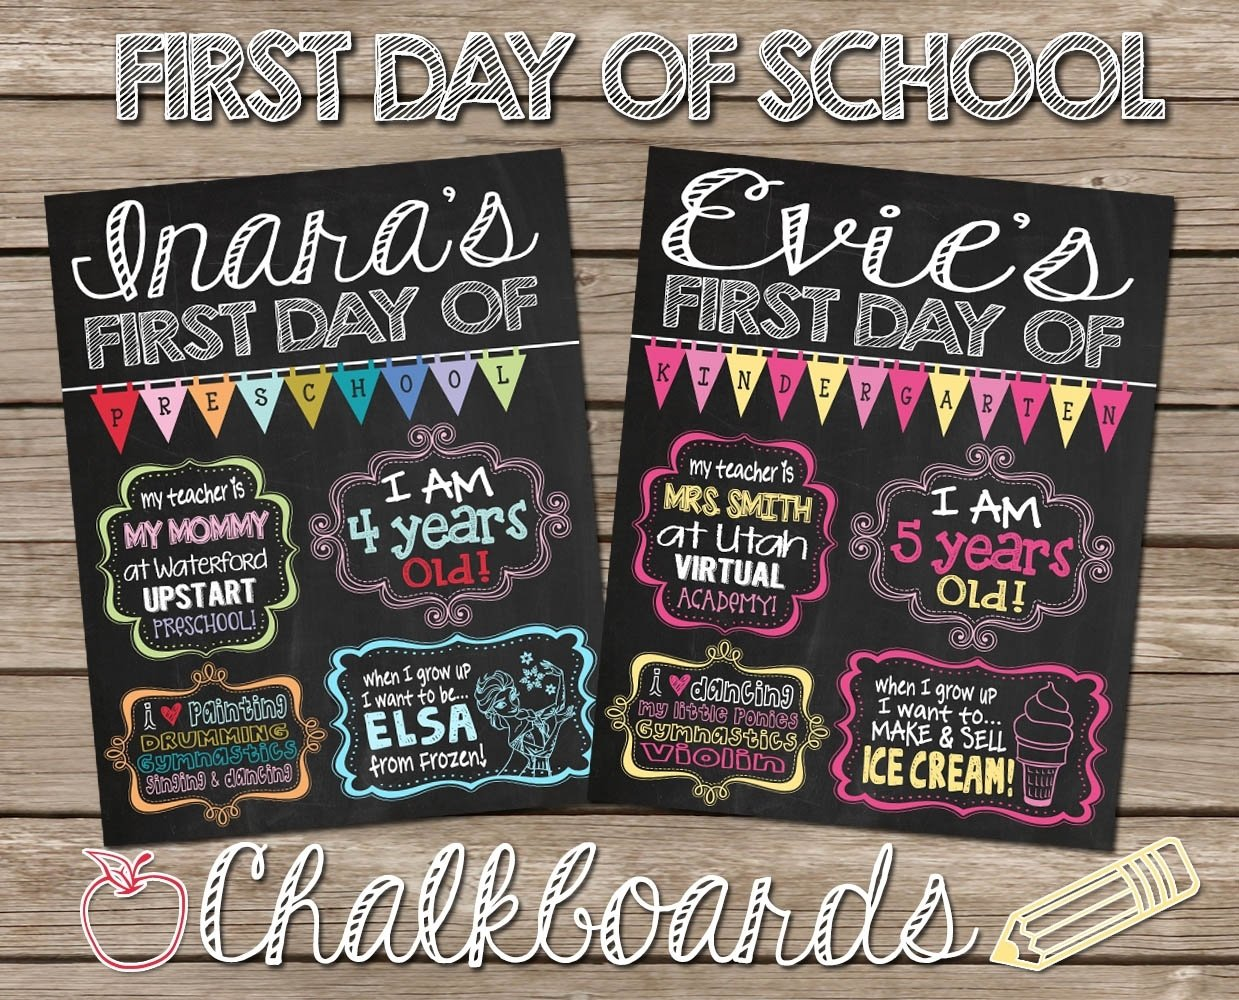 10 Fabulous First Day Of Preschool Ideas first day of school chalkboard poster sign for first day of 2020